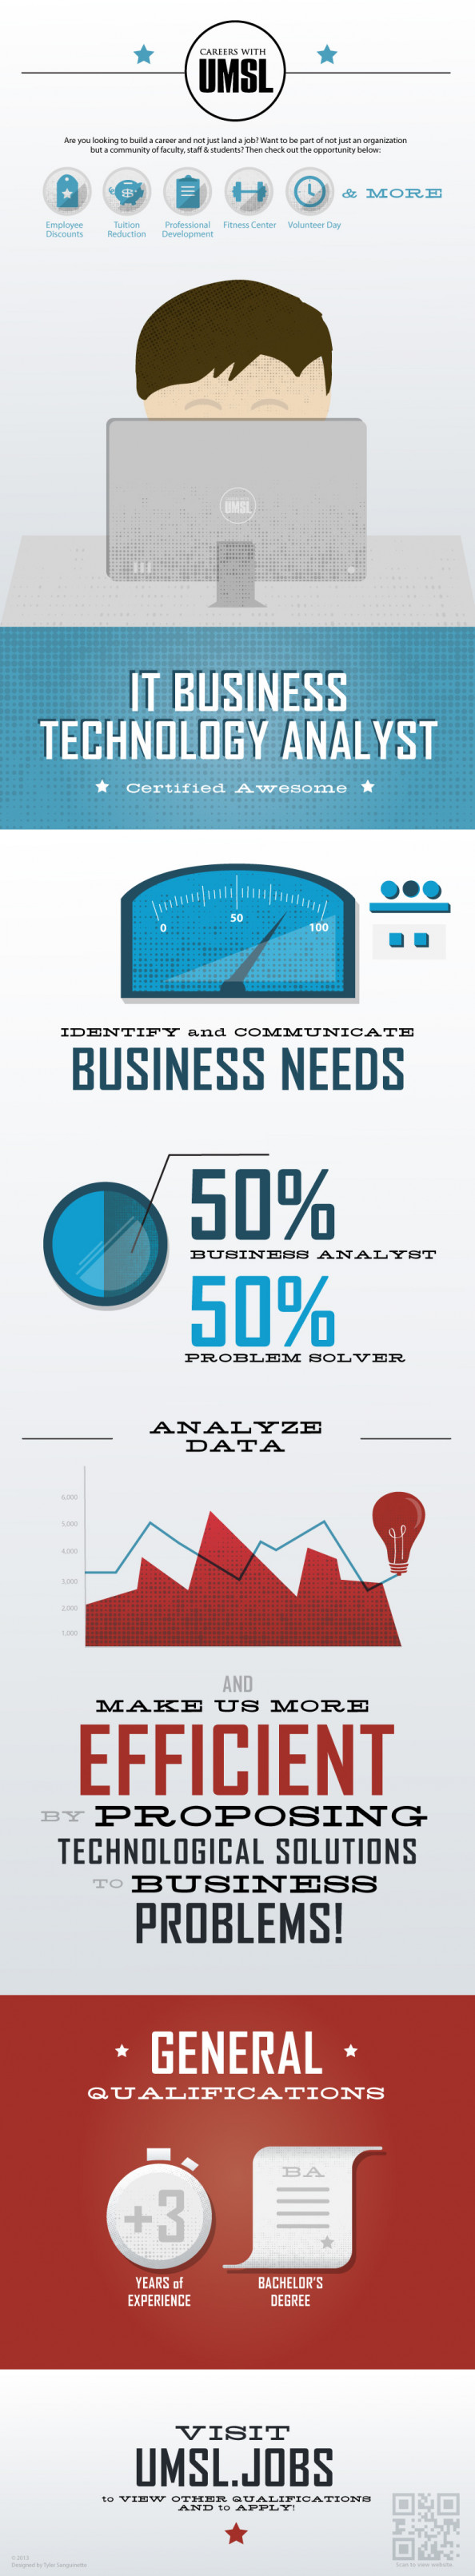 IT Business Technology Analyst Infographic